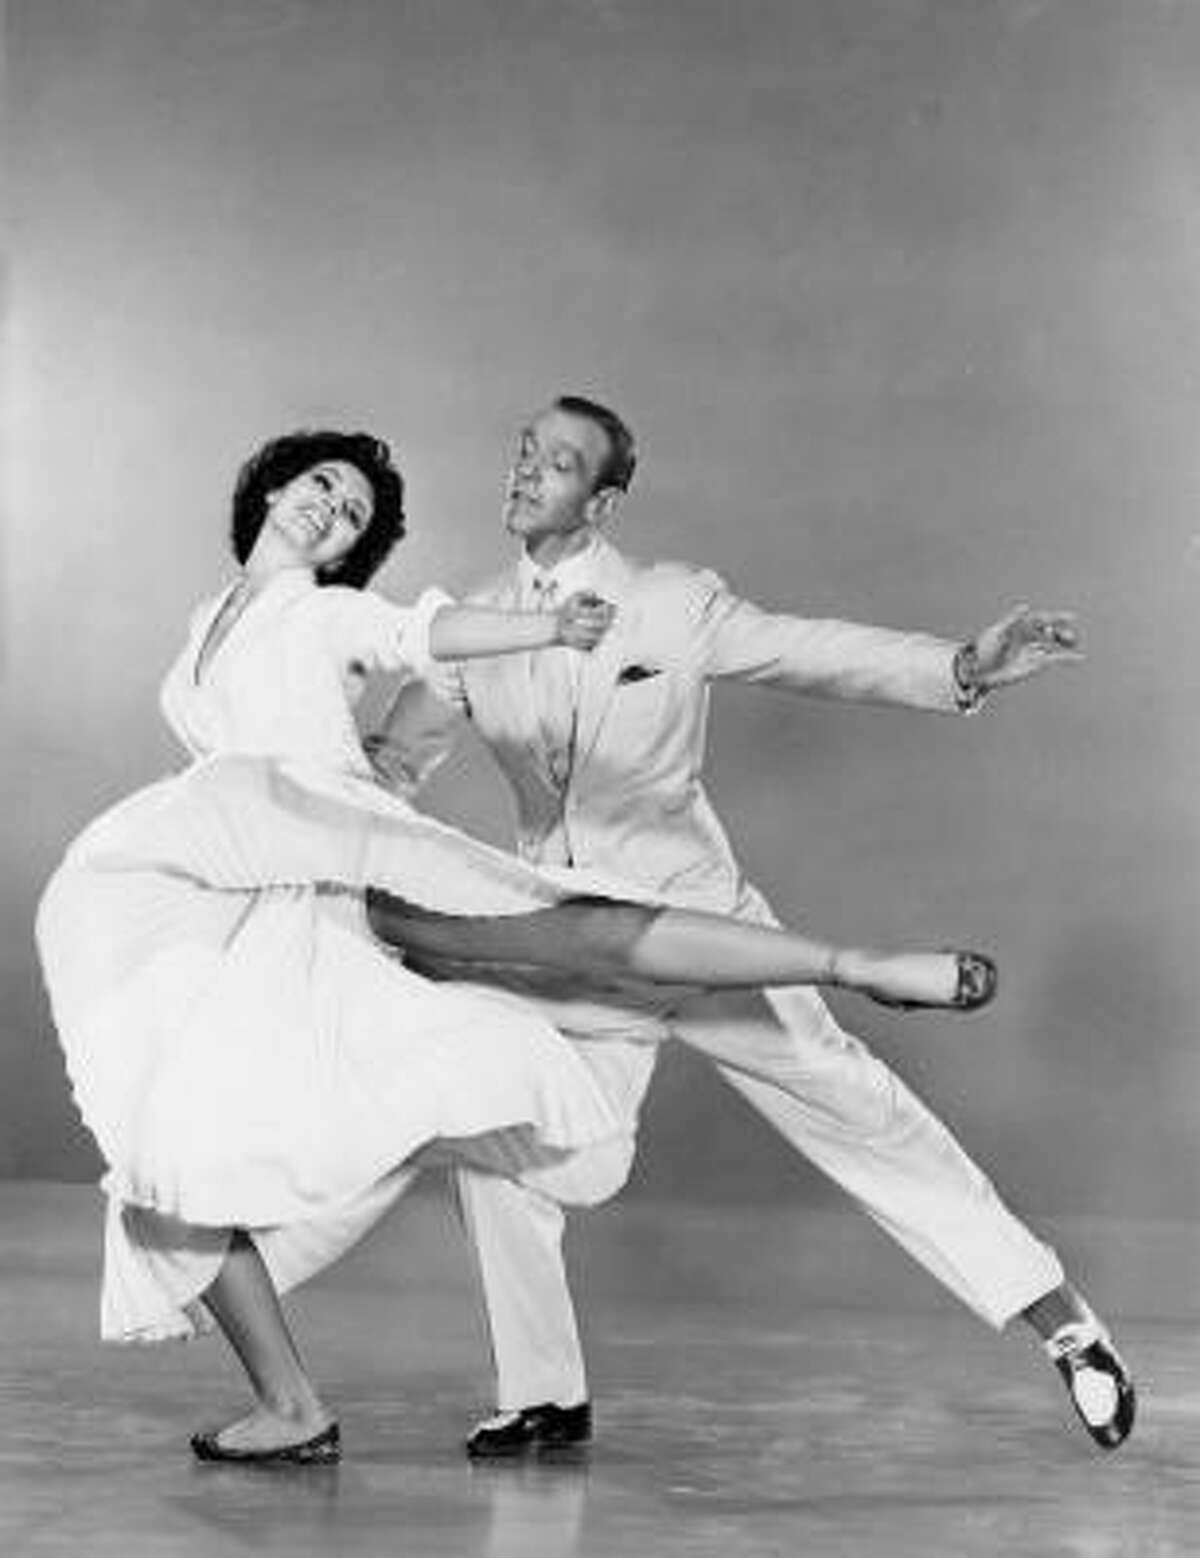 During the Depression people wanted to see glamour and escape into fantasies, like Fred Astaire dancing on a ceiling.